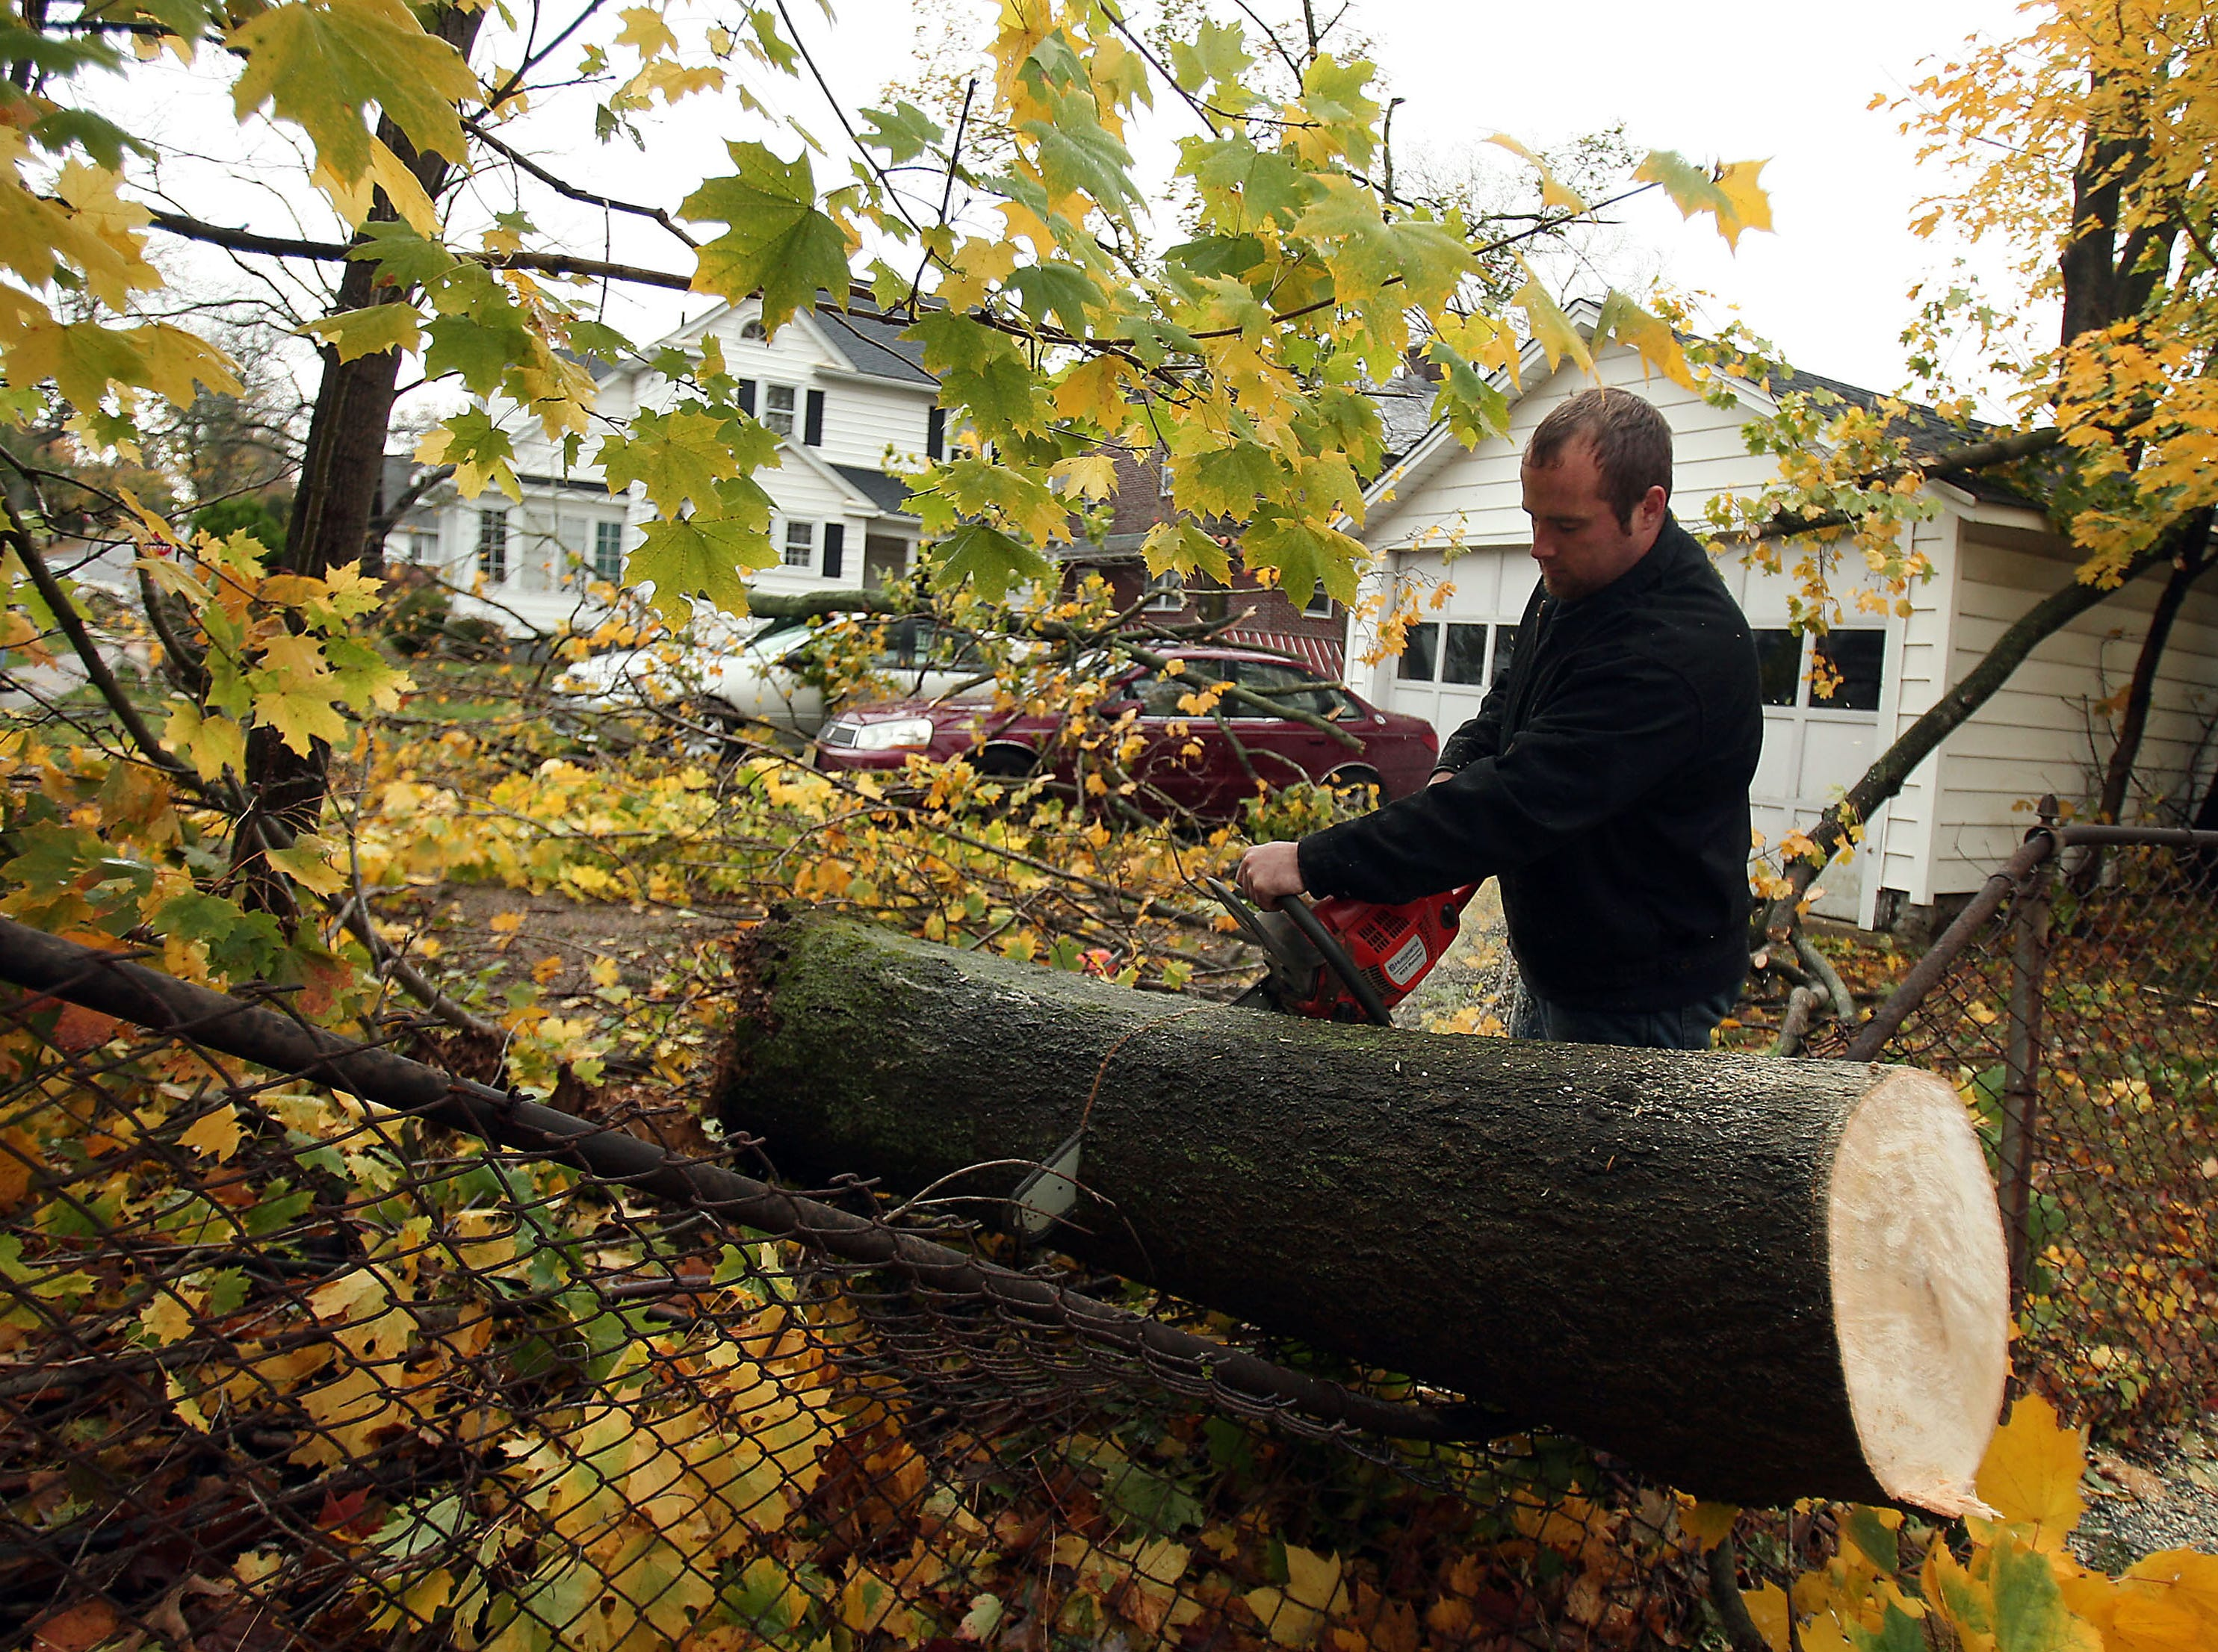 Morristown, NJ-- October 30, 2012--Steve Penzenik of Roxbury uses a chain saw to cut up a fallen tree on Mills Street in Morristown, NJ after Hurricane Sandy left homes damages and without power throughout New Jersey. Bob Karp/Staff Photographer/DAILY RECORD